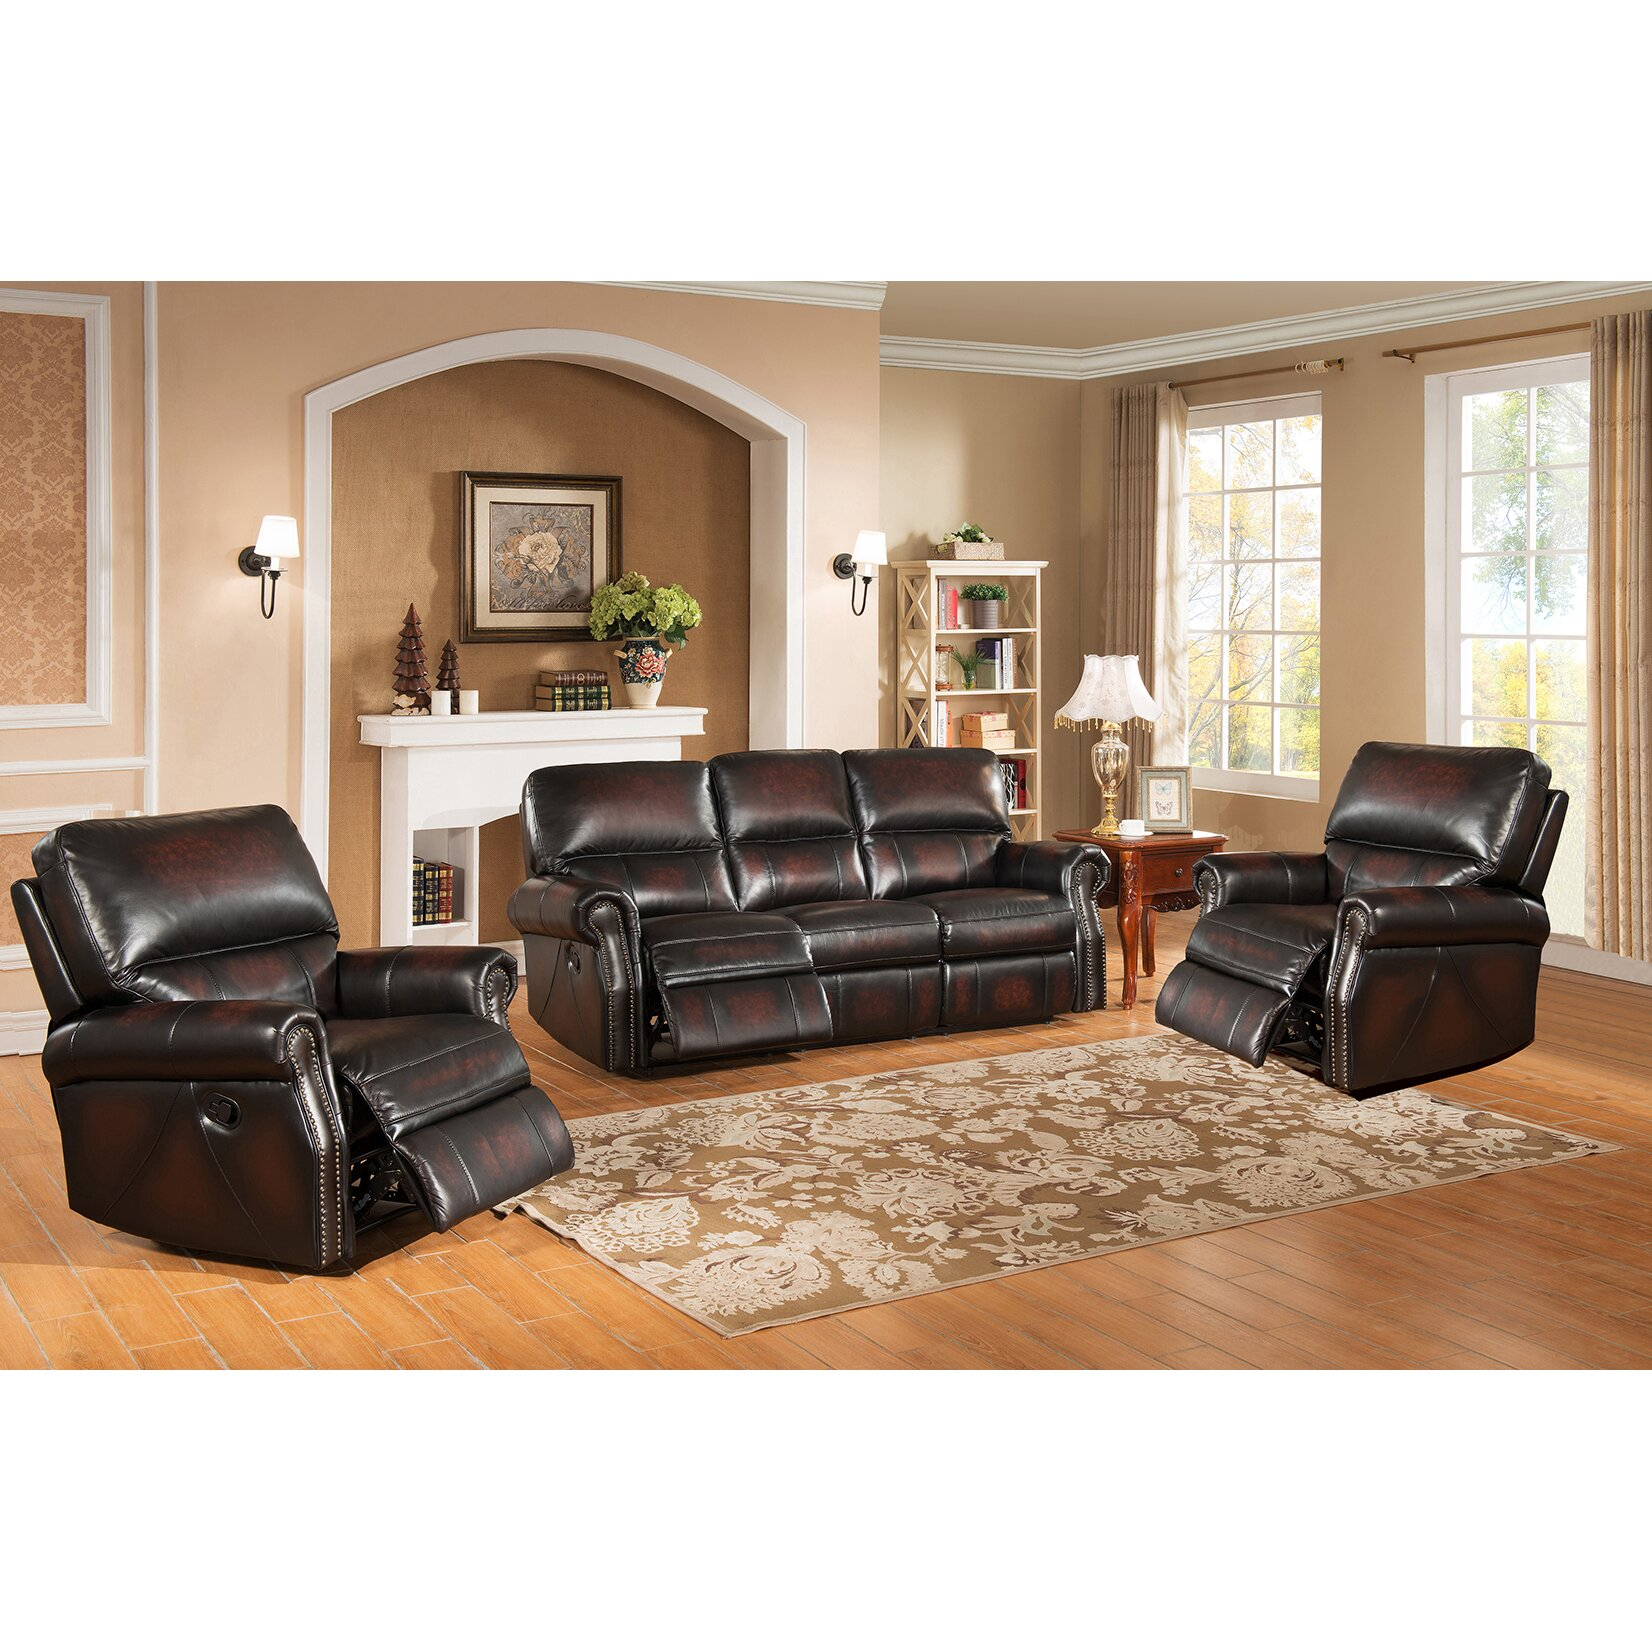 Three Piece Leather Living Room Set. Cabinets For Living Room. Decorate Apartment Living Room. Traditional Furniture Living Room. Living Room With Stairs Design Ideas. How To Pick Curtains For Living Room. Beautiful Living Room Images. Ottoman Living Room. Living Room Furniture Layout Ideas With Fireplace